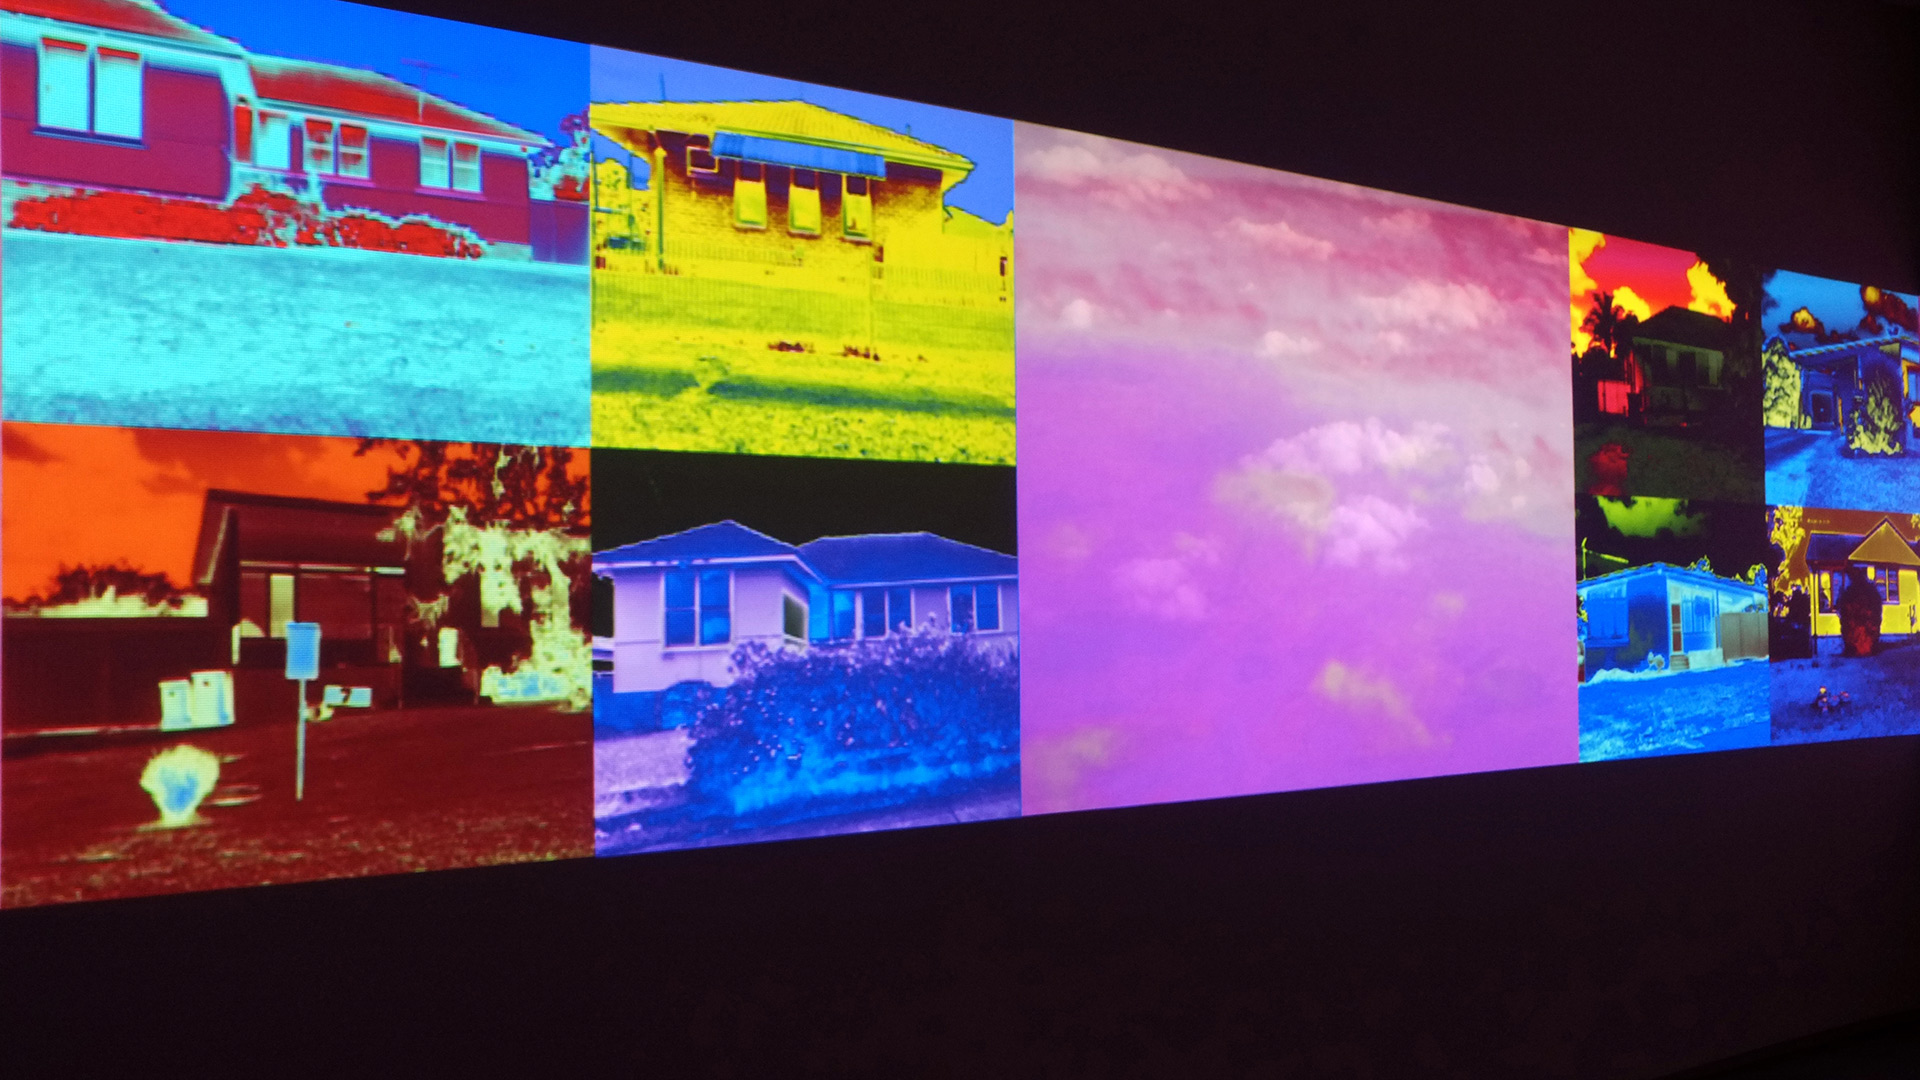 Khaled Sabsabi:  Airland   ,  2012, Exhibition view. 8 channel video installation with audio. Photo courtesy of the artist.